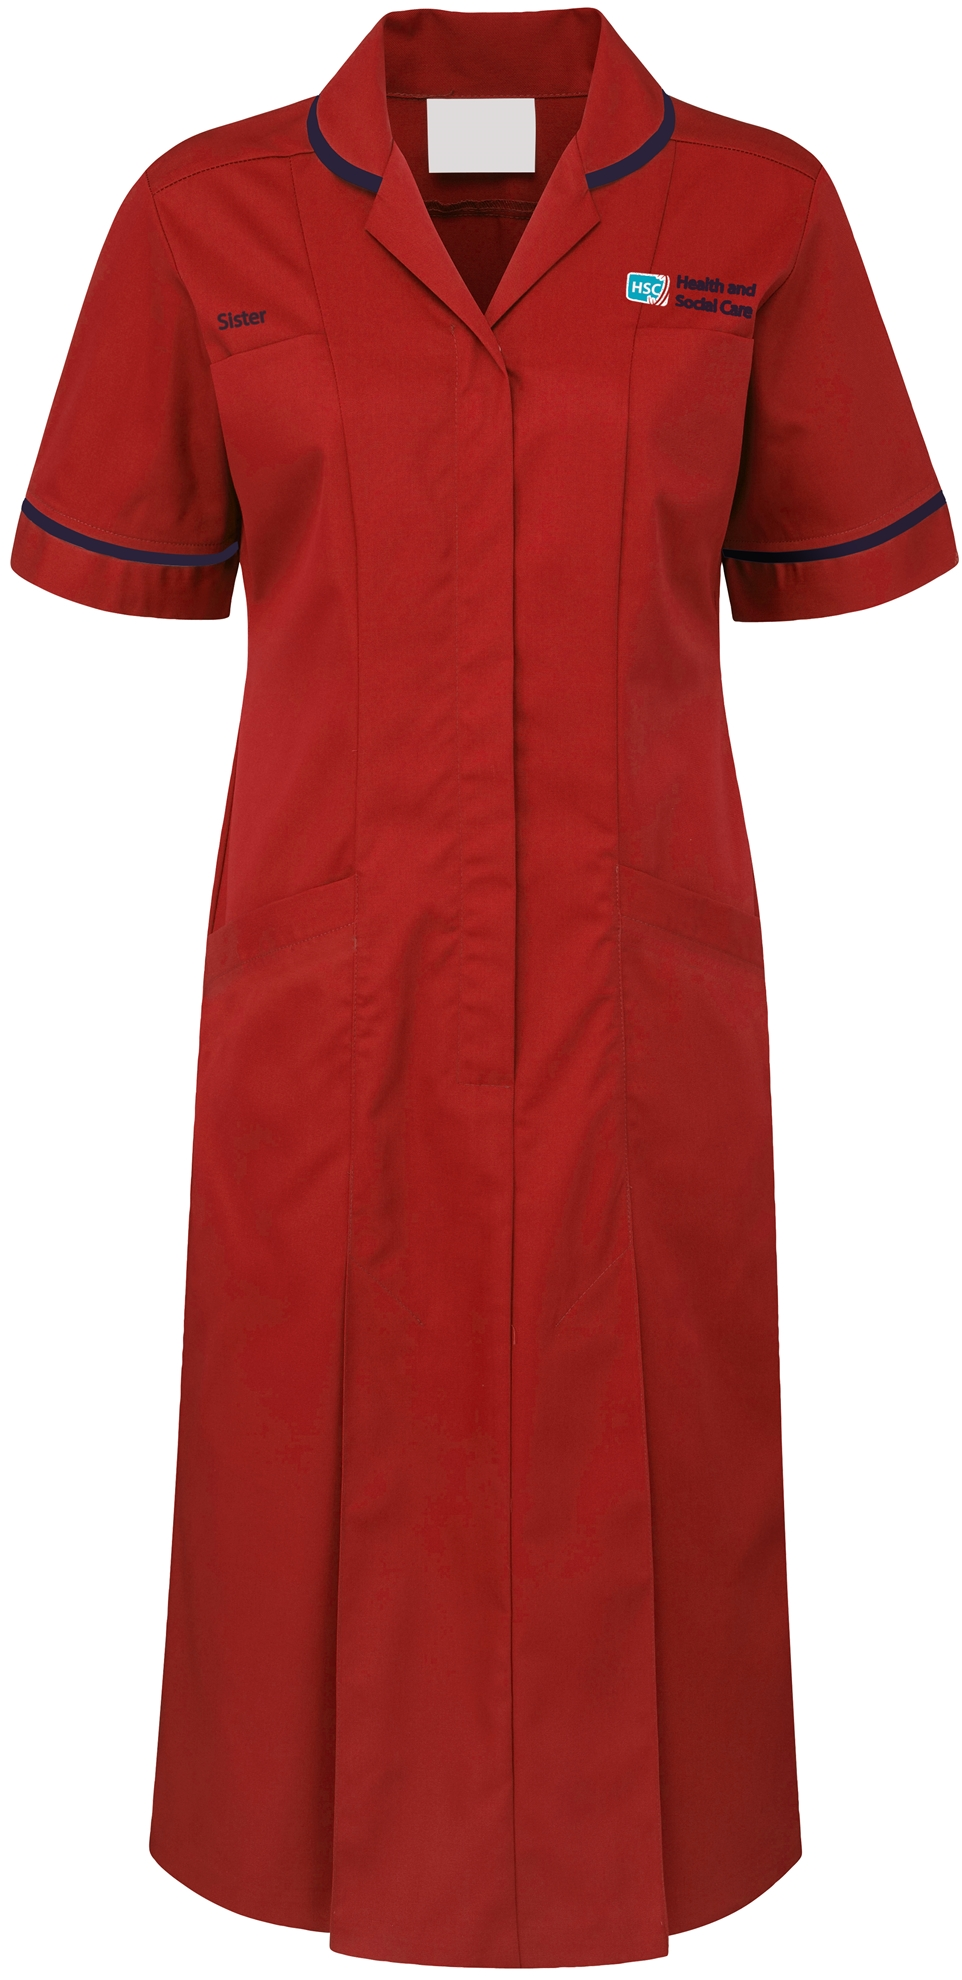 Picture of Plain Colour Dress - Red/Navy